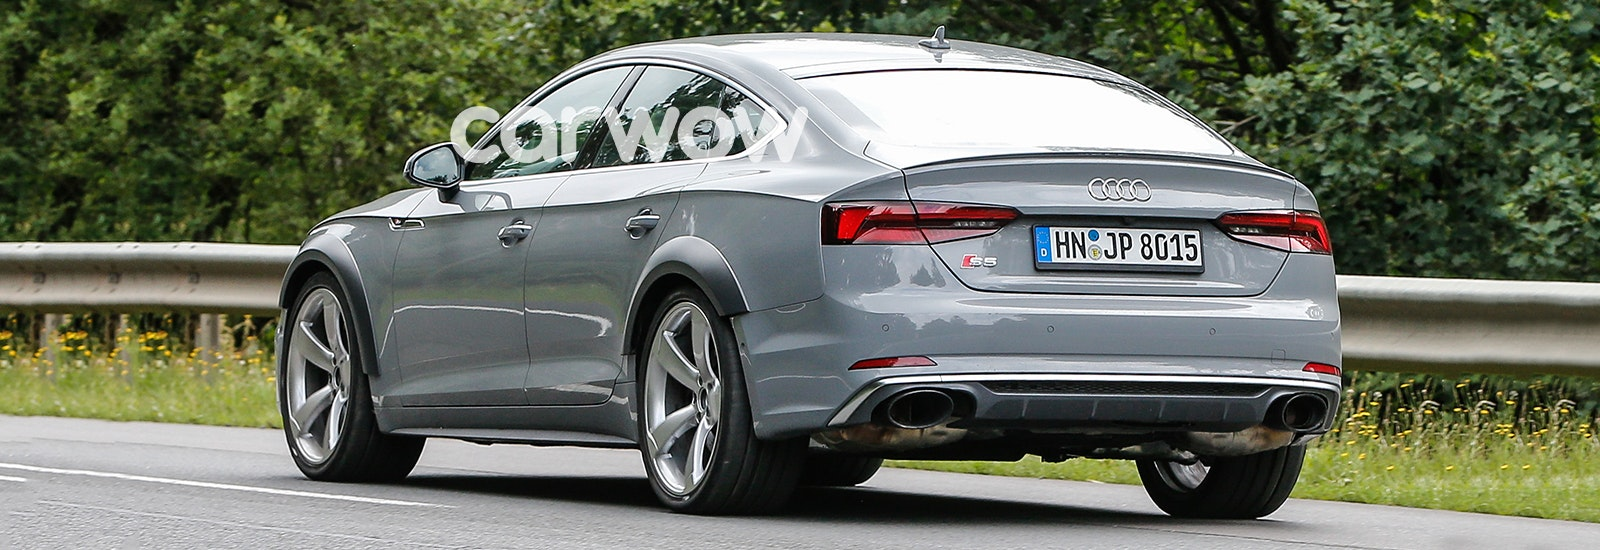 2018 Audi Rs5 Sportback Price Specs Release Date Carwow